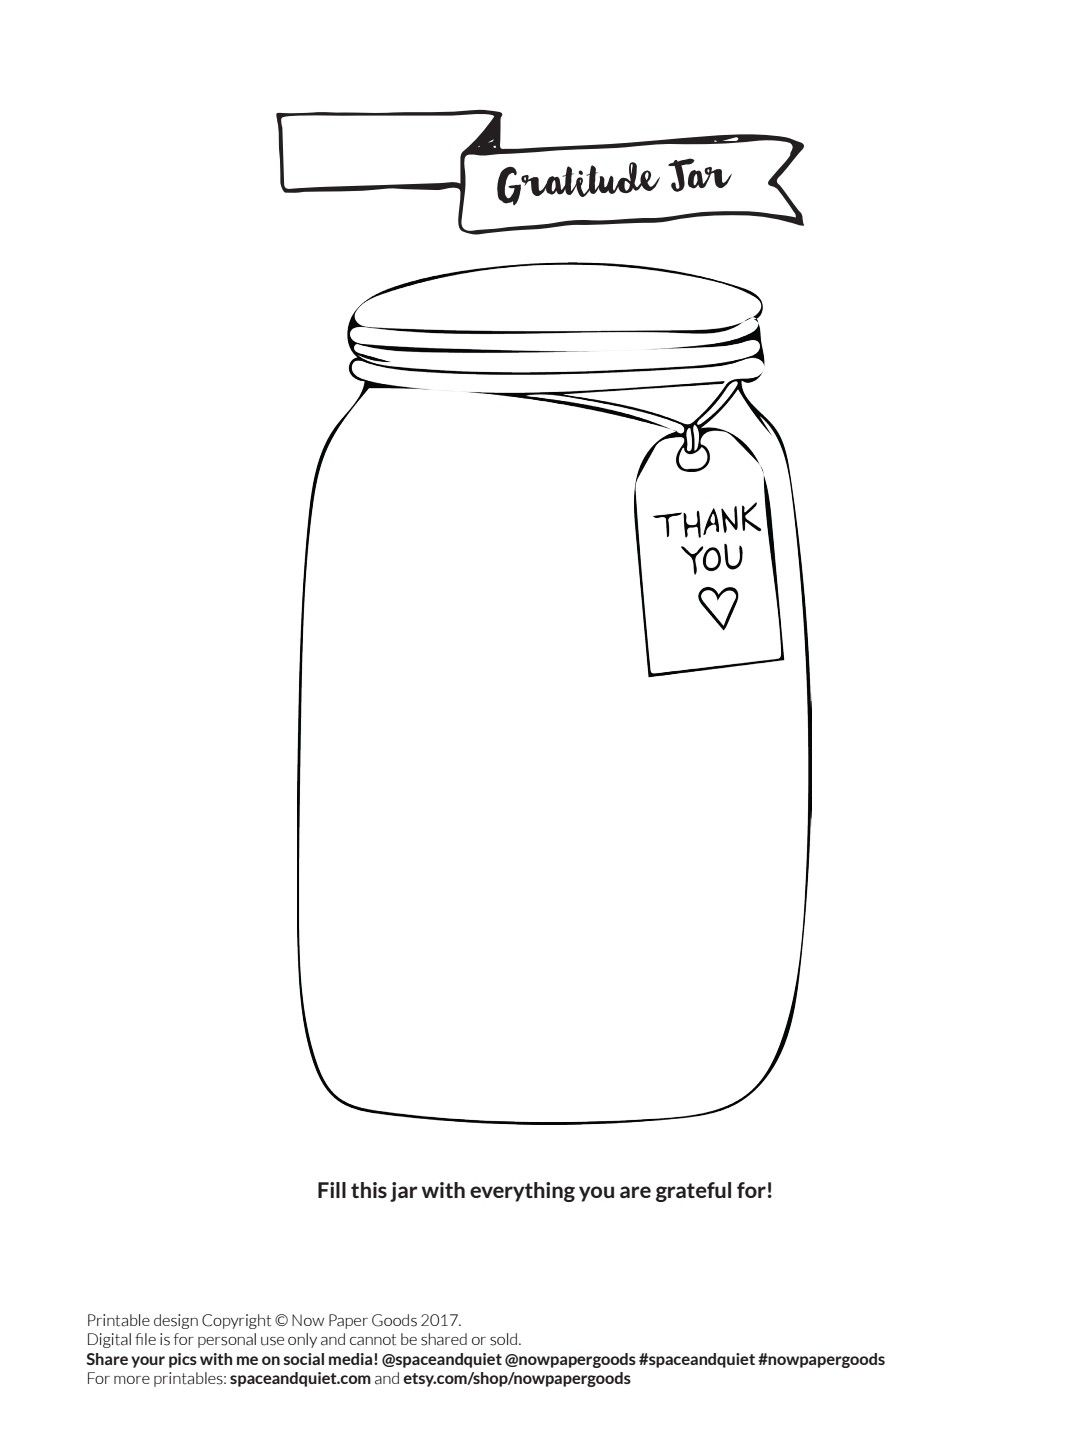 Gratitude Jar Exercise Worksheet Bullet Journal Buju With